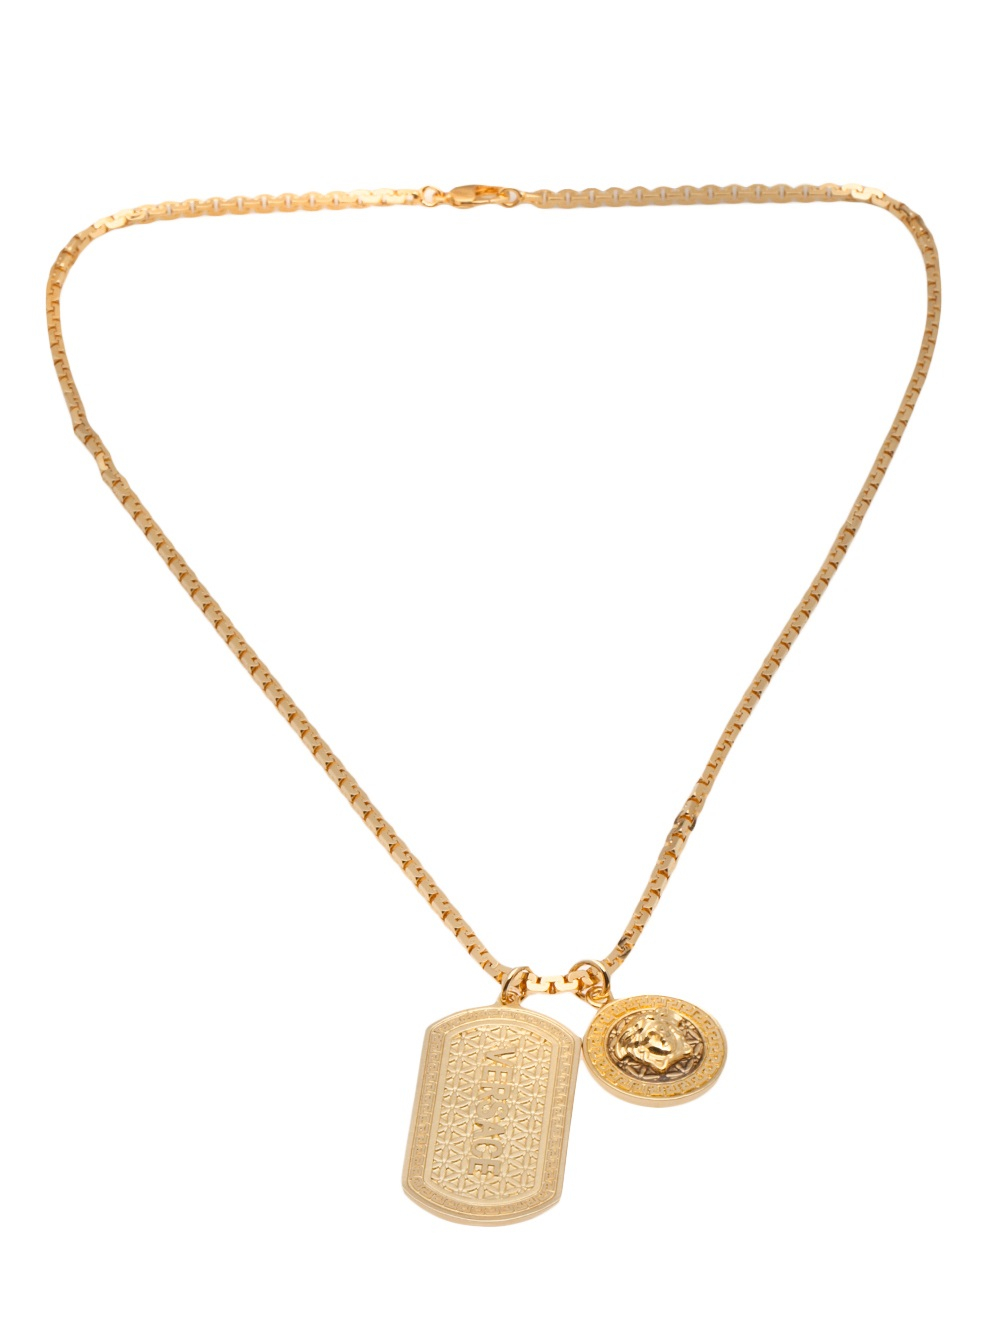 versace double dog tag necklace in gold for men metallic. Black Bedroom Furniture Sets. Home Design Ideas